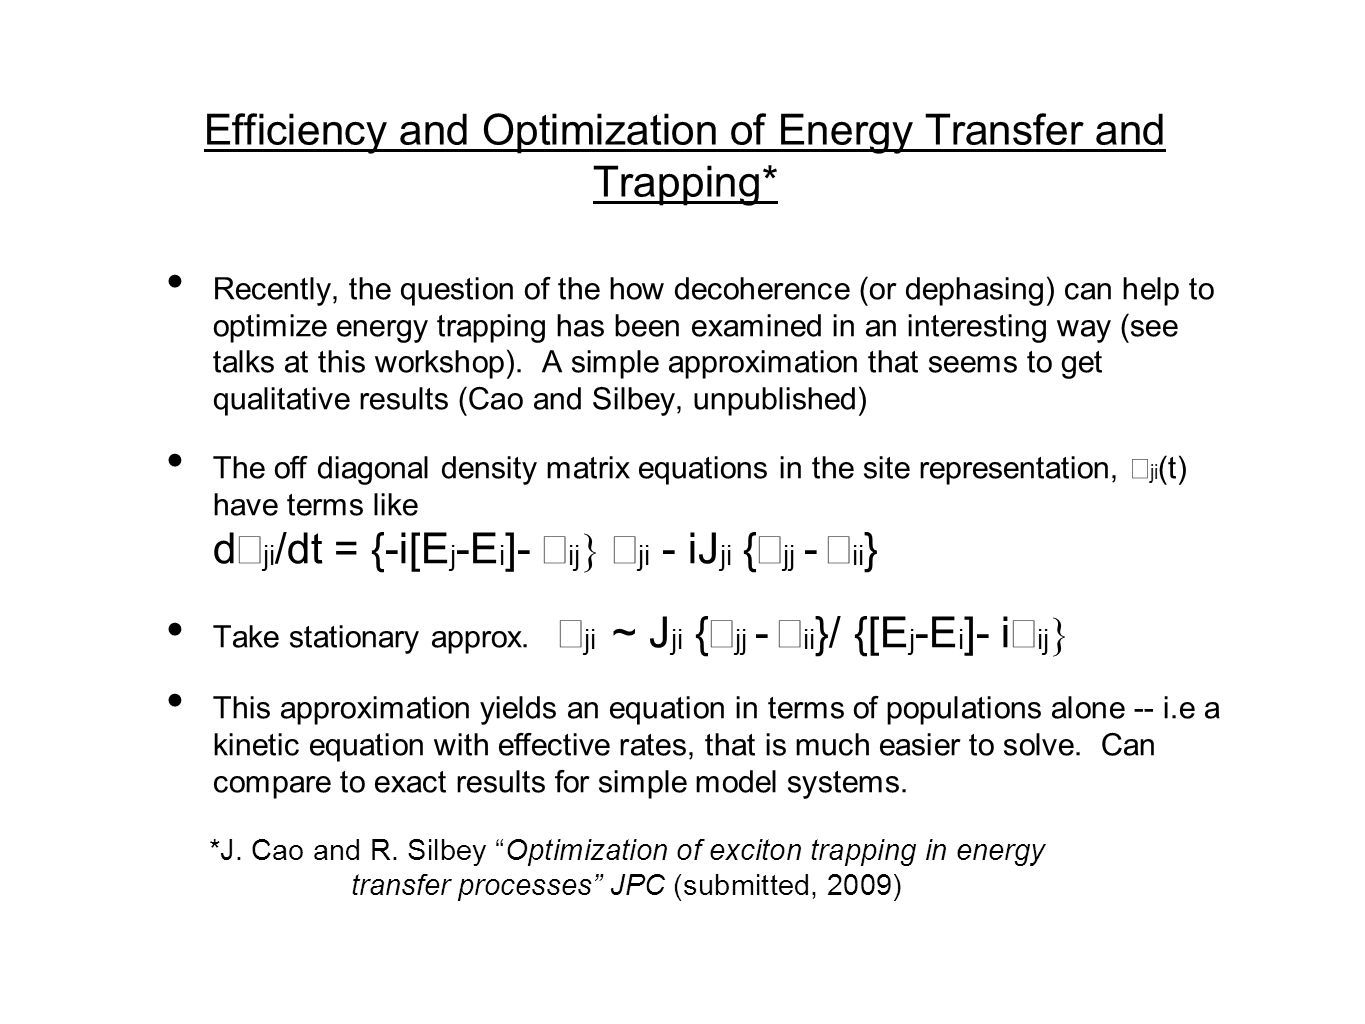 Efficiency and Optimization of Energy Transfer and Trapping* Recently, the question of the how decoherence (or dephasing) can help to optimize energy trapping has been examined in an interesting way (see talks at this workshop).